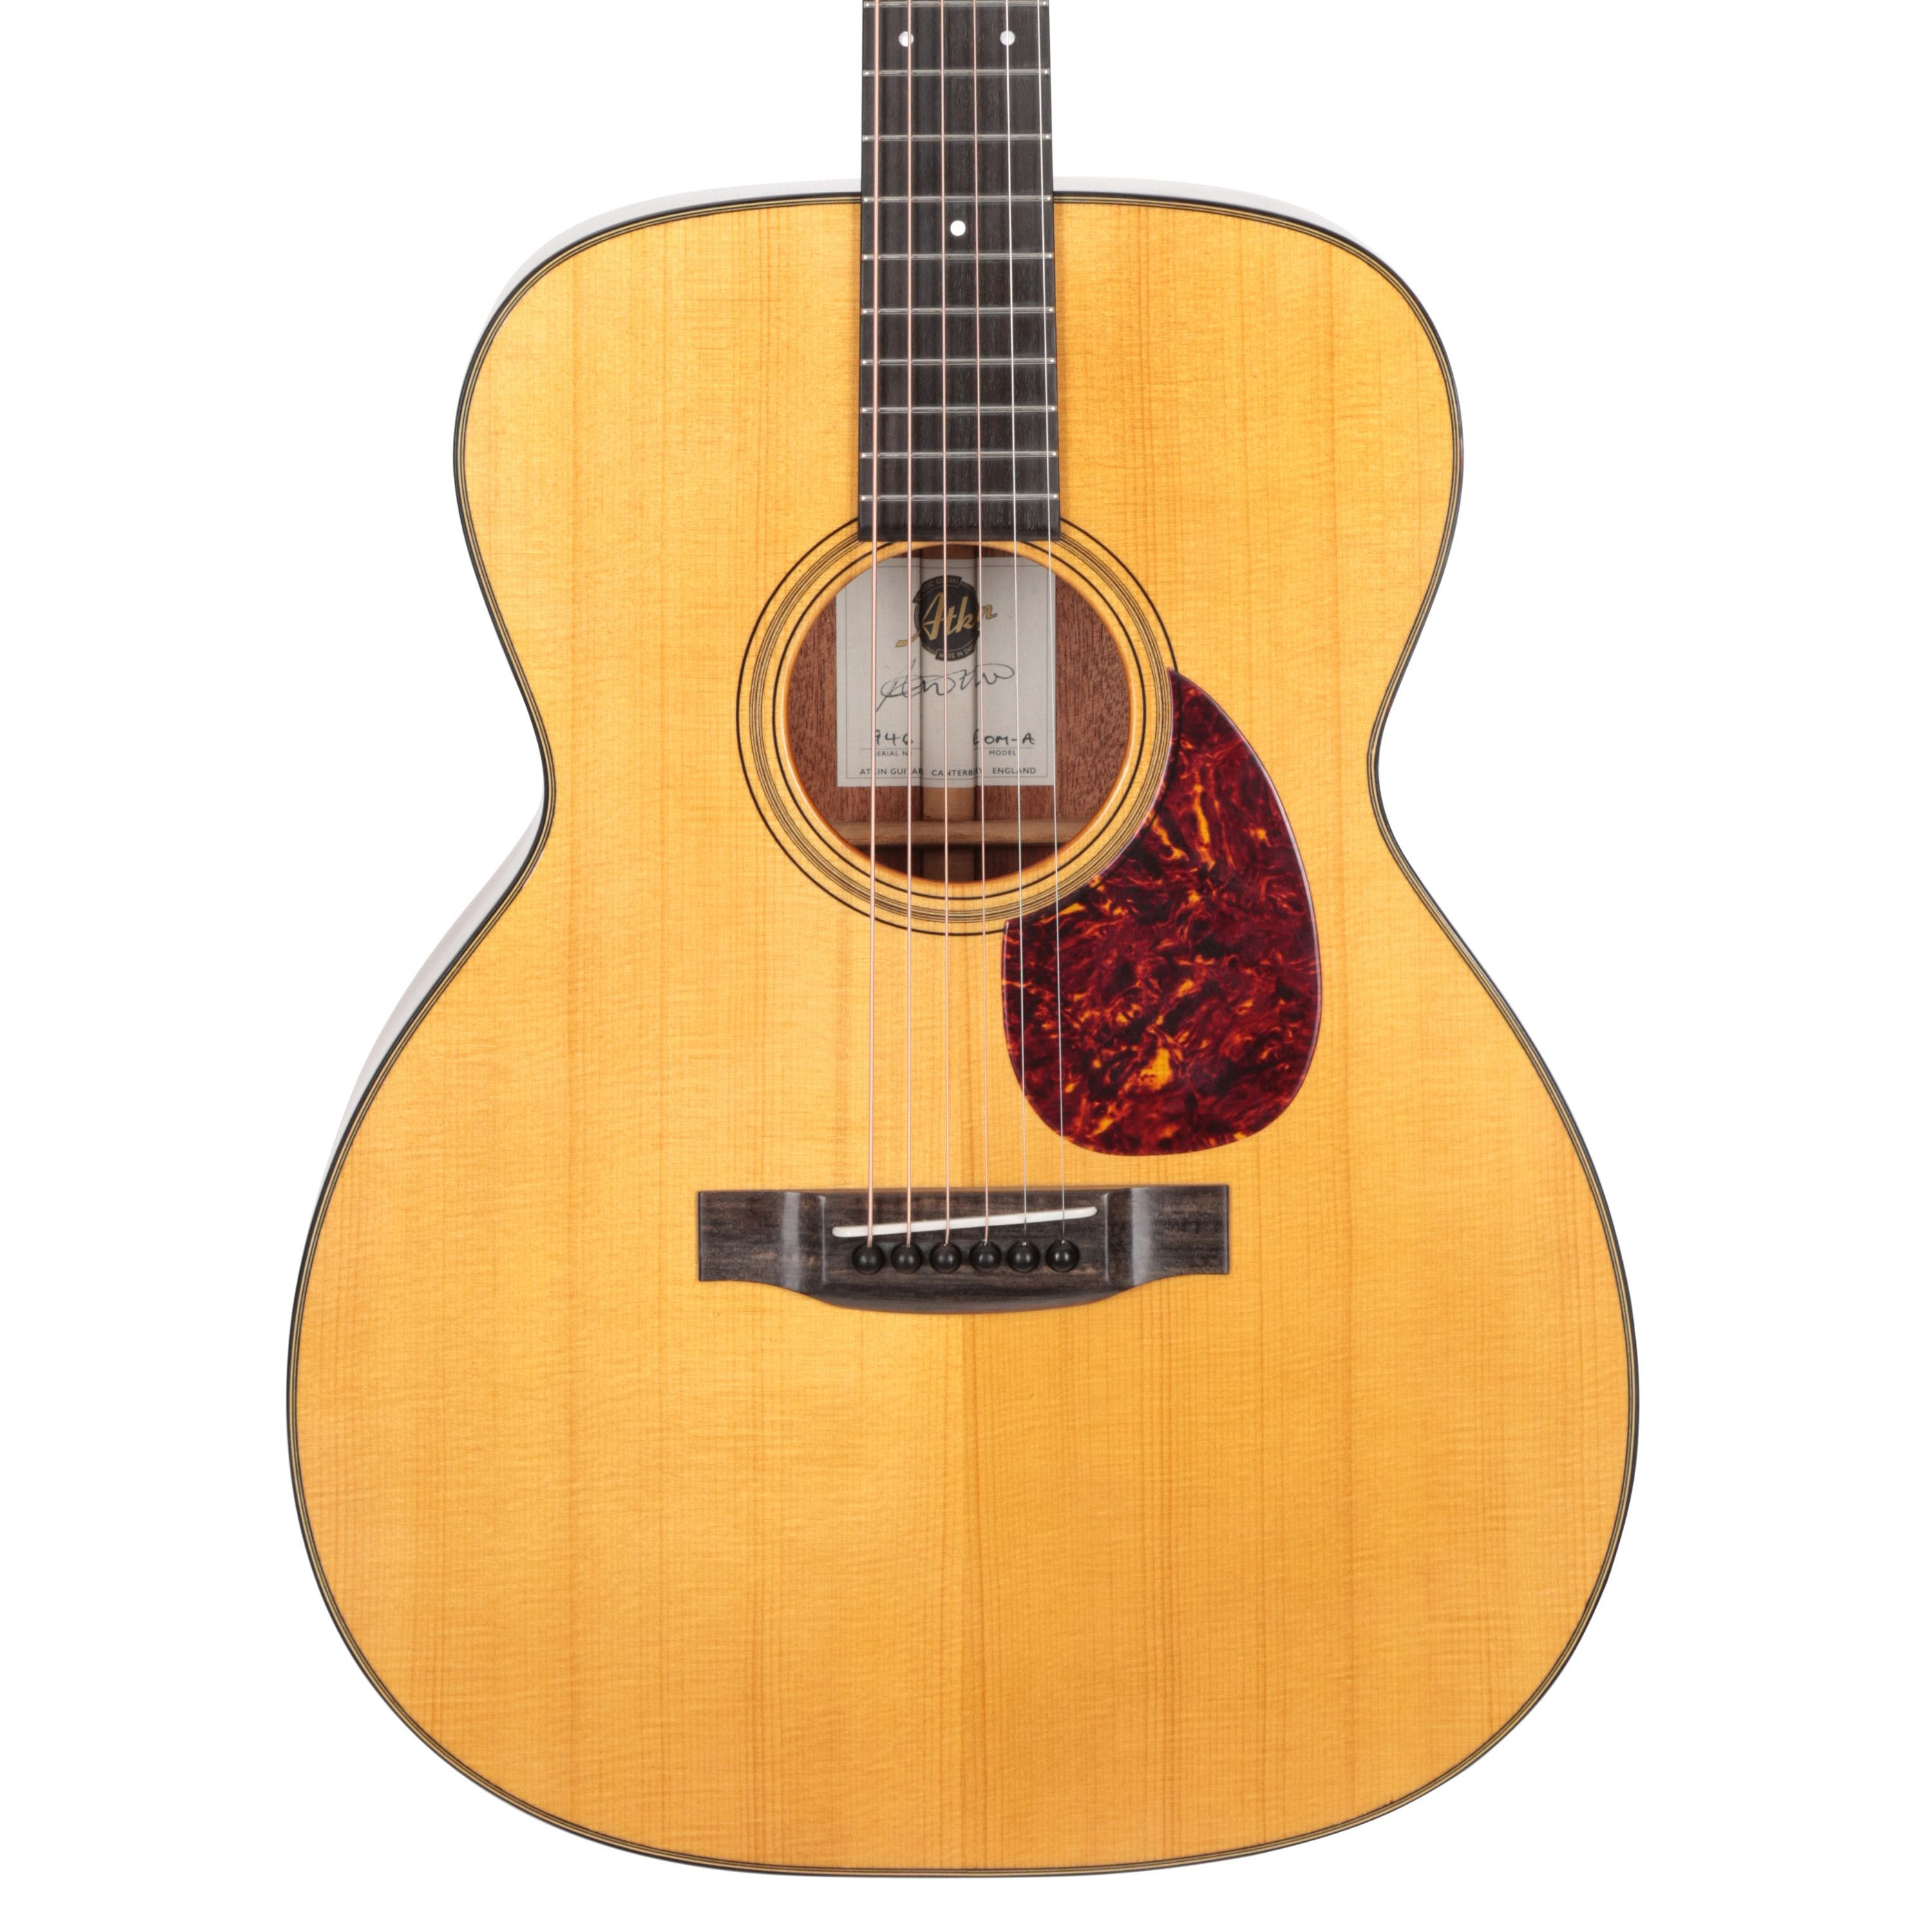 Acoustic Electric Guitars Painstaking Fender Sonoran Sce Acoustic Electric Guitar Choice Materials Musical Instruments & Gear